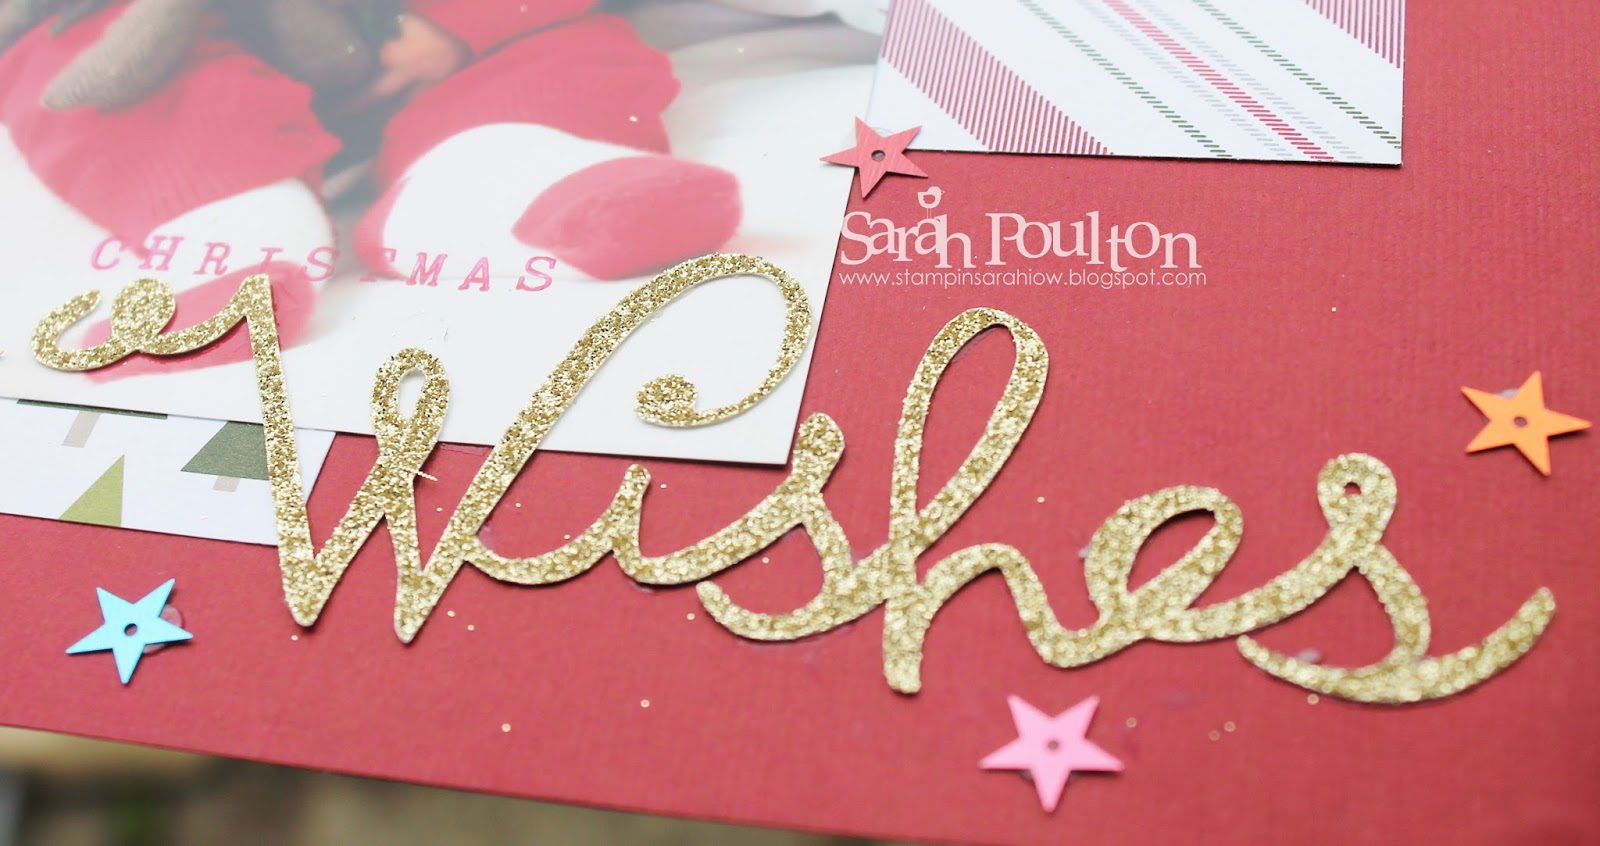 How to scrapbook yahoo -  You Can Get A Head Start On All That Christmas Loveliness Please Drop Me A Line On Poulton_sarah Yahoo Co Uk And I Ll Pop One In An Envelope For You